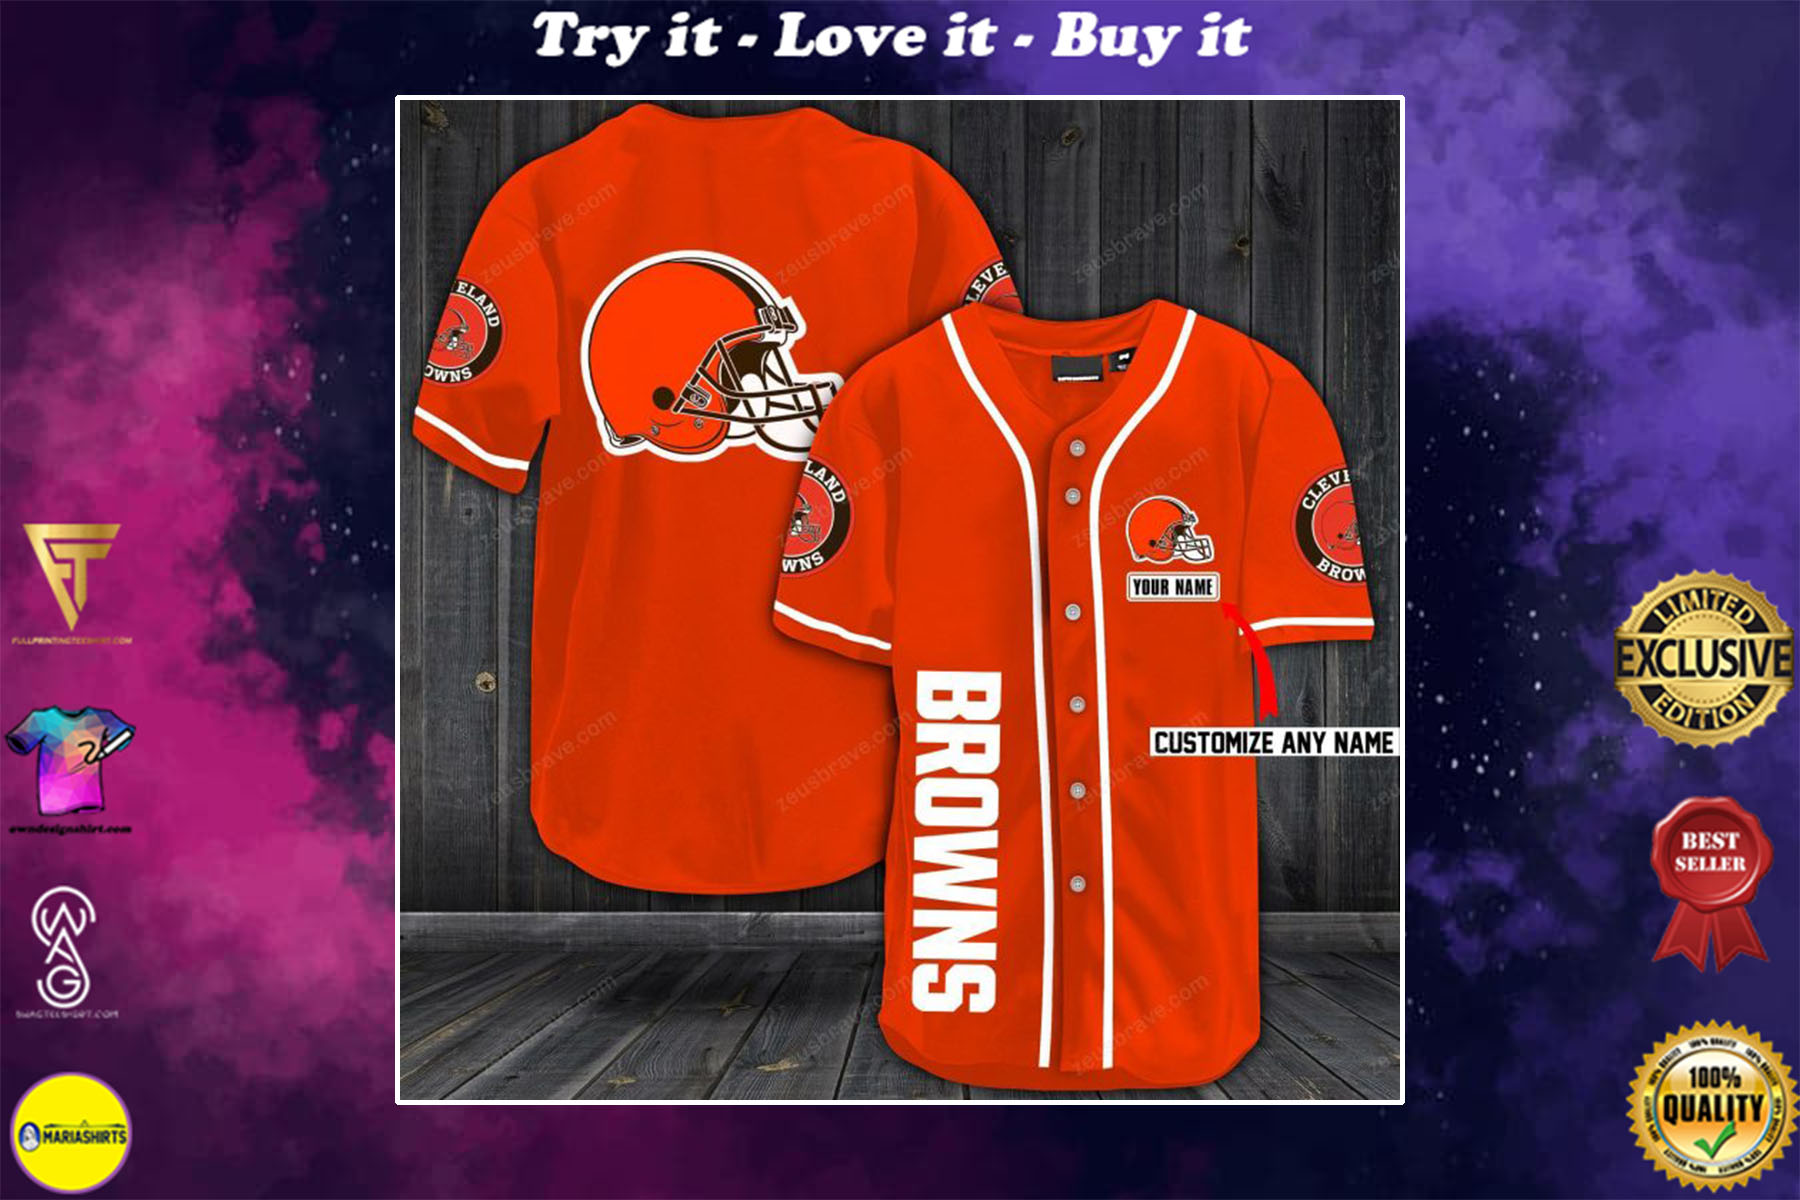 [special edition] personalized name jersey cleveland browns shirt - maria